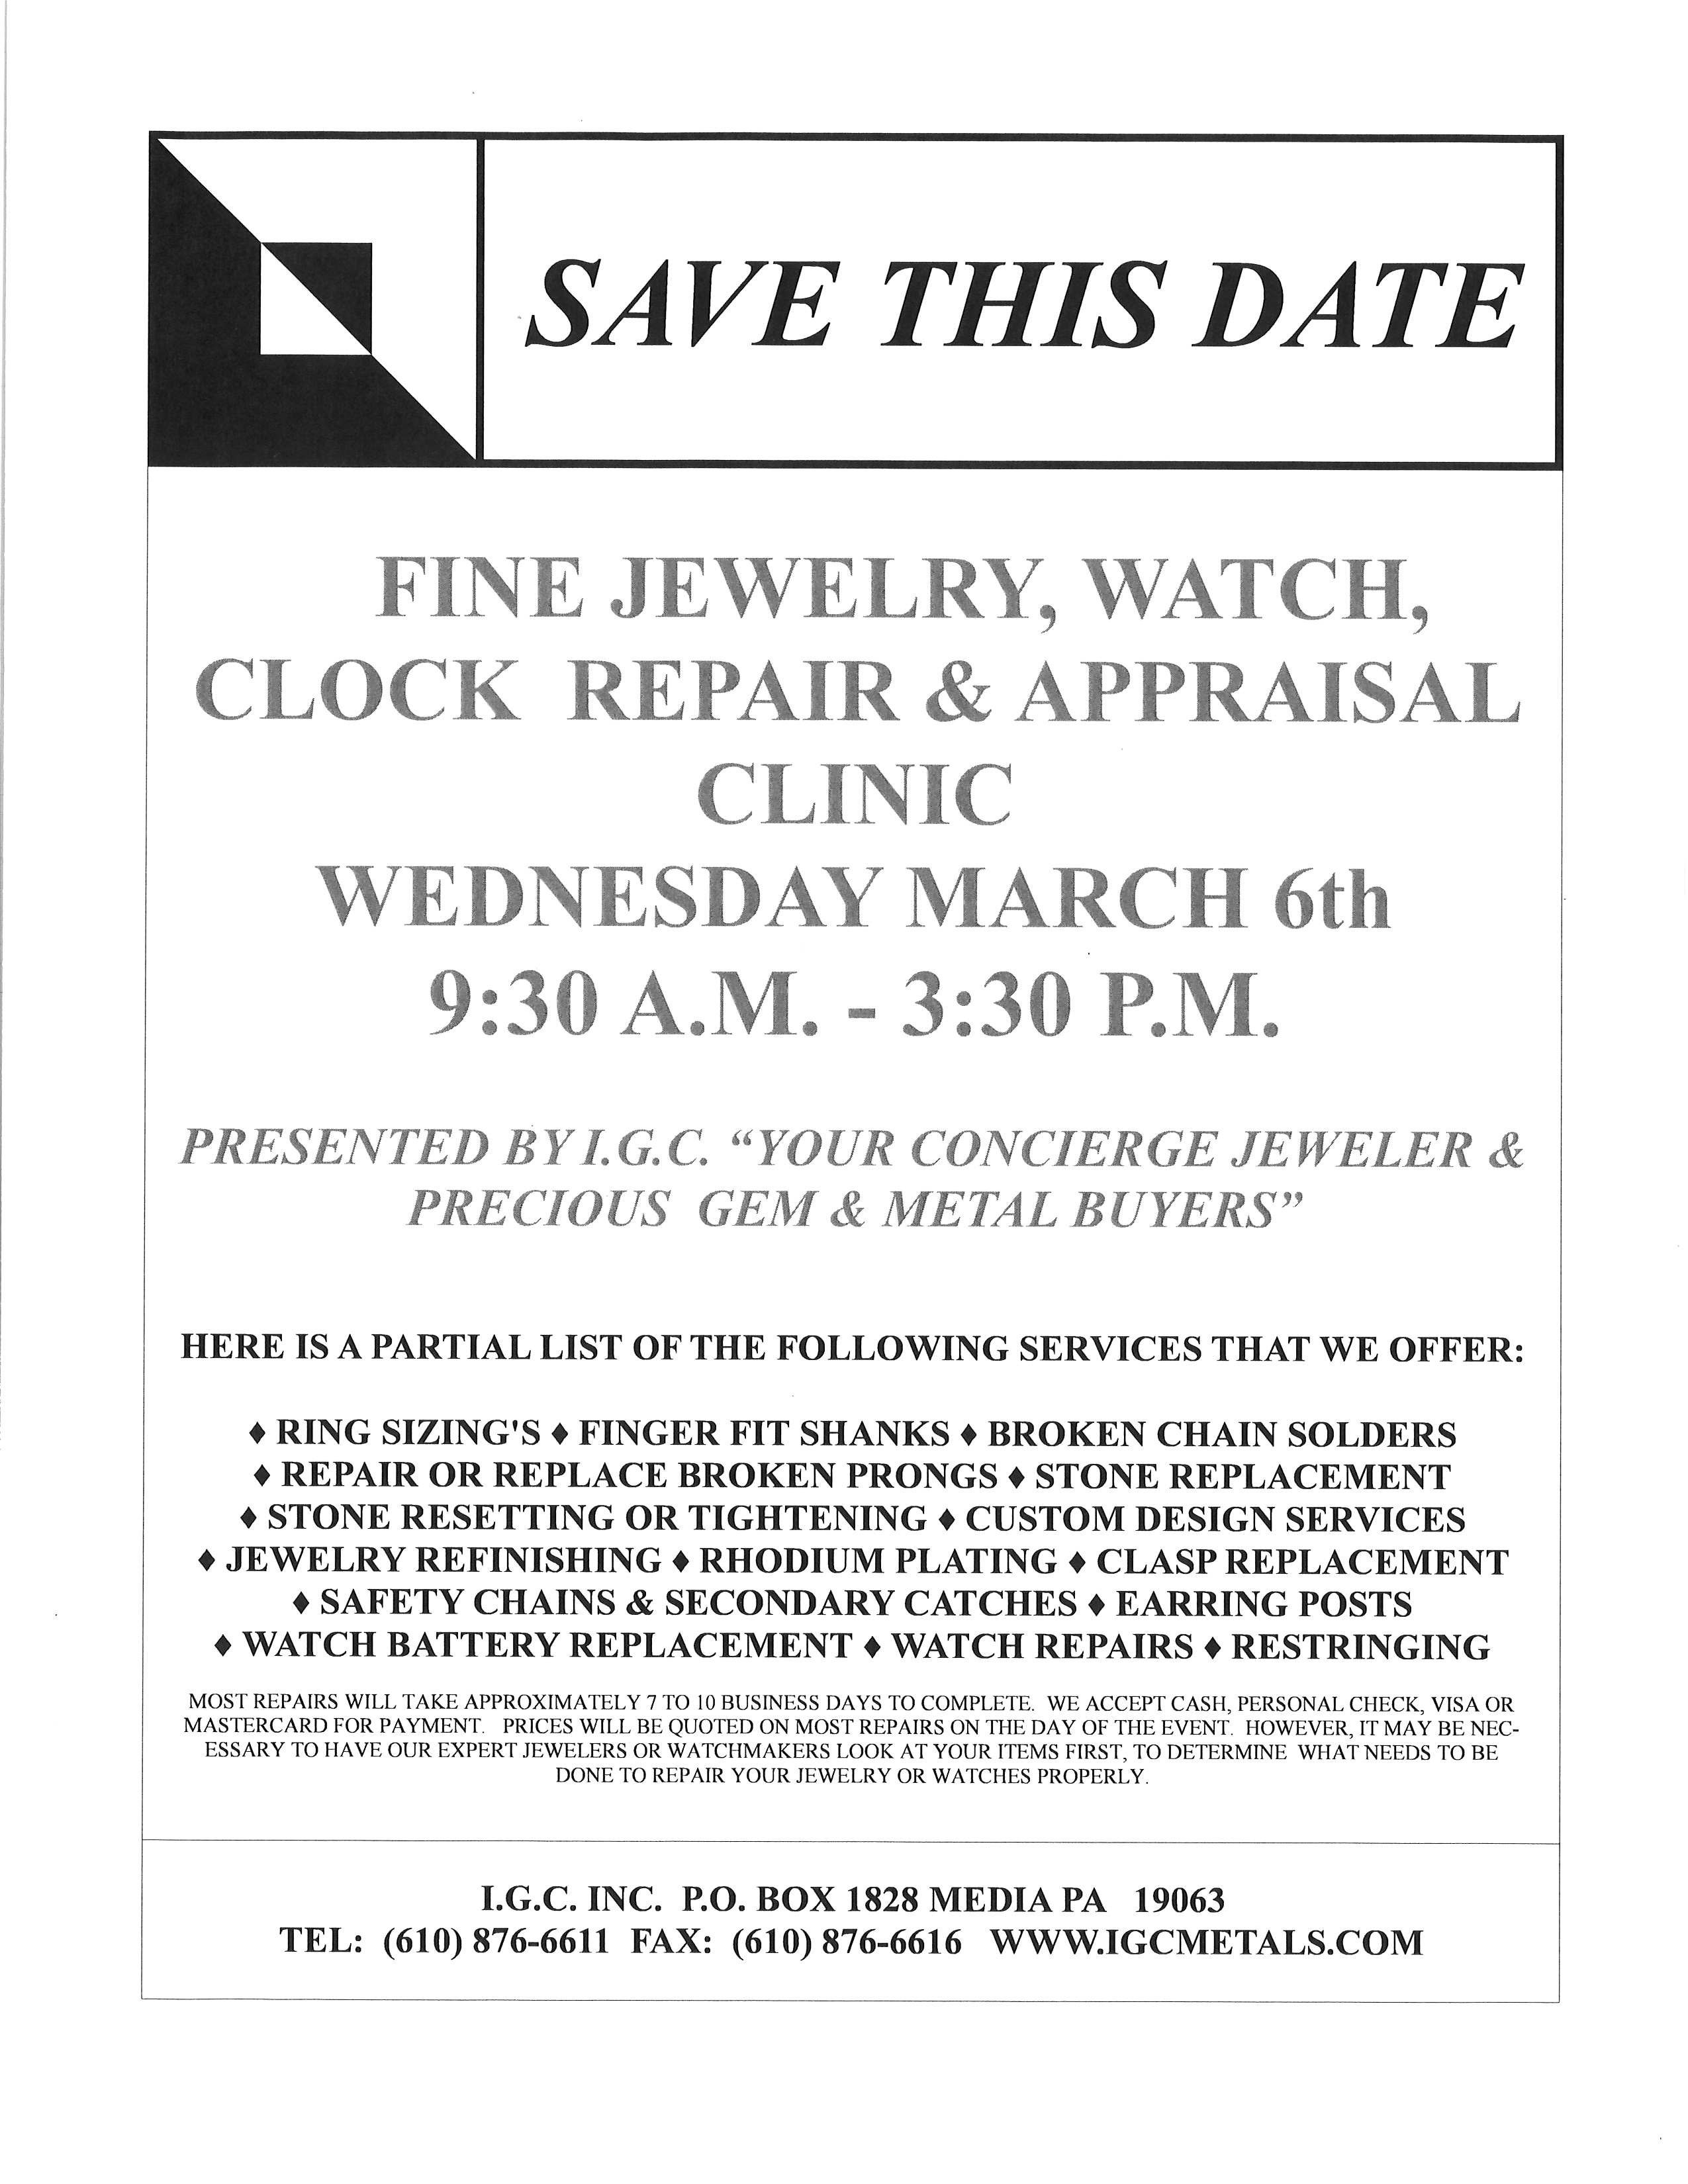 IGC Jewelry Repair and Appraisal Clinic - DelmarvaLife